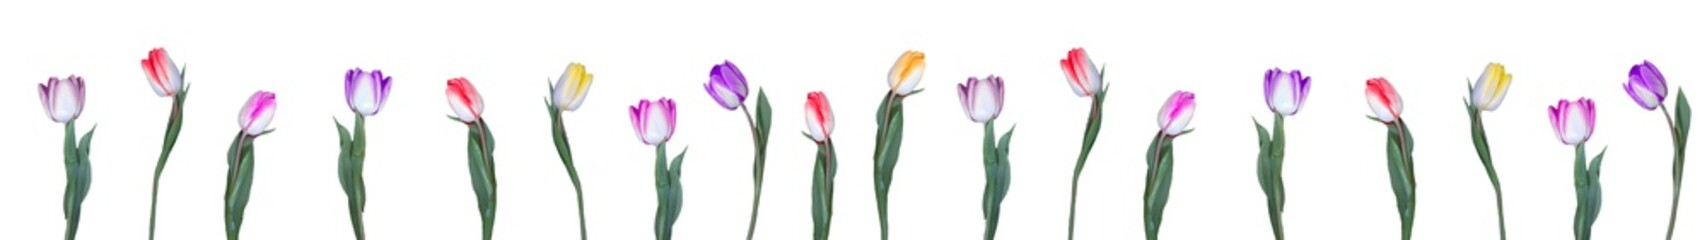 Photo sur Plexiglas Tulip Many multicolored tulips in a row, isolated on white background banner panorama long